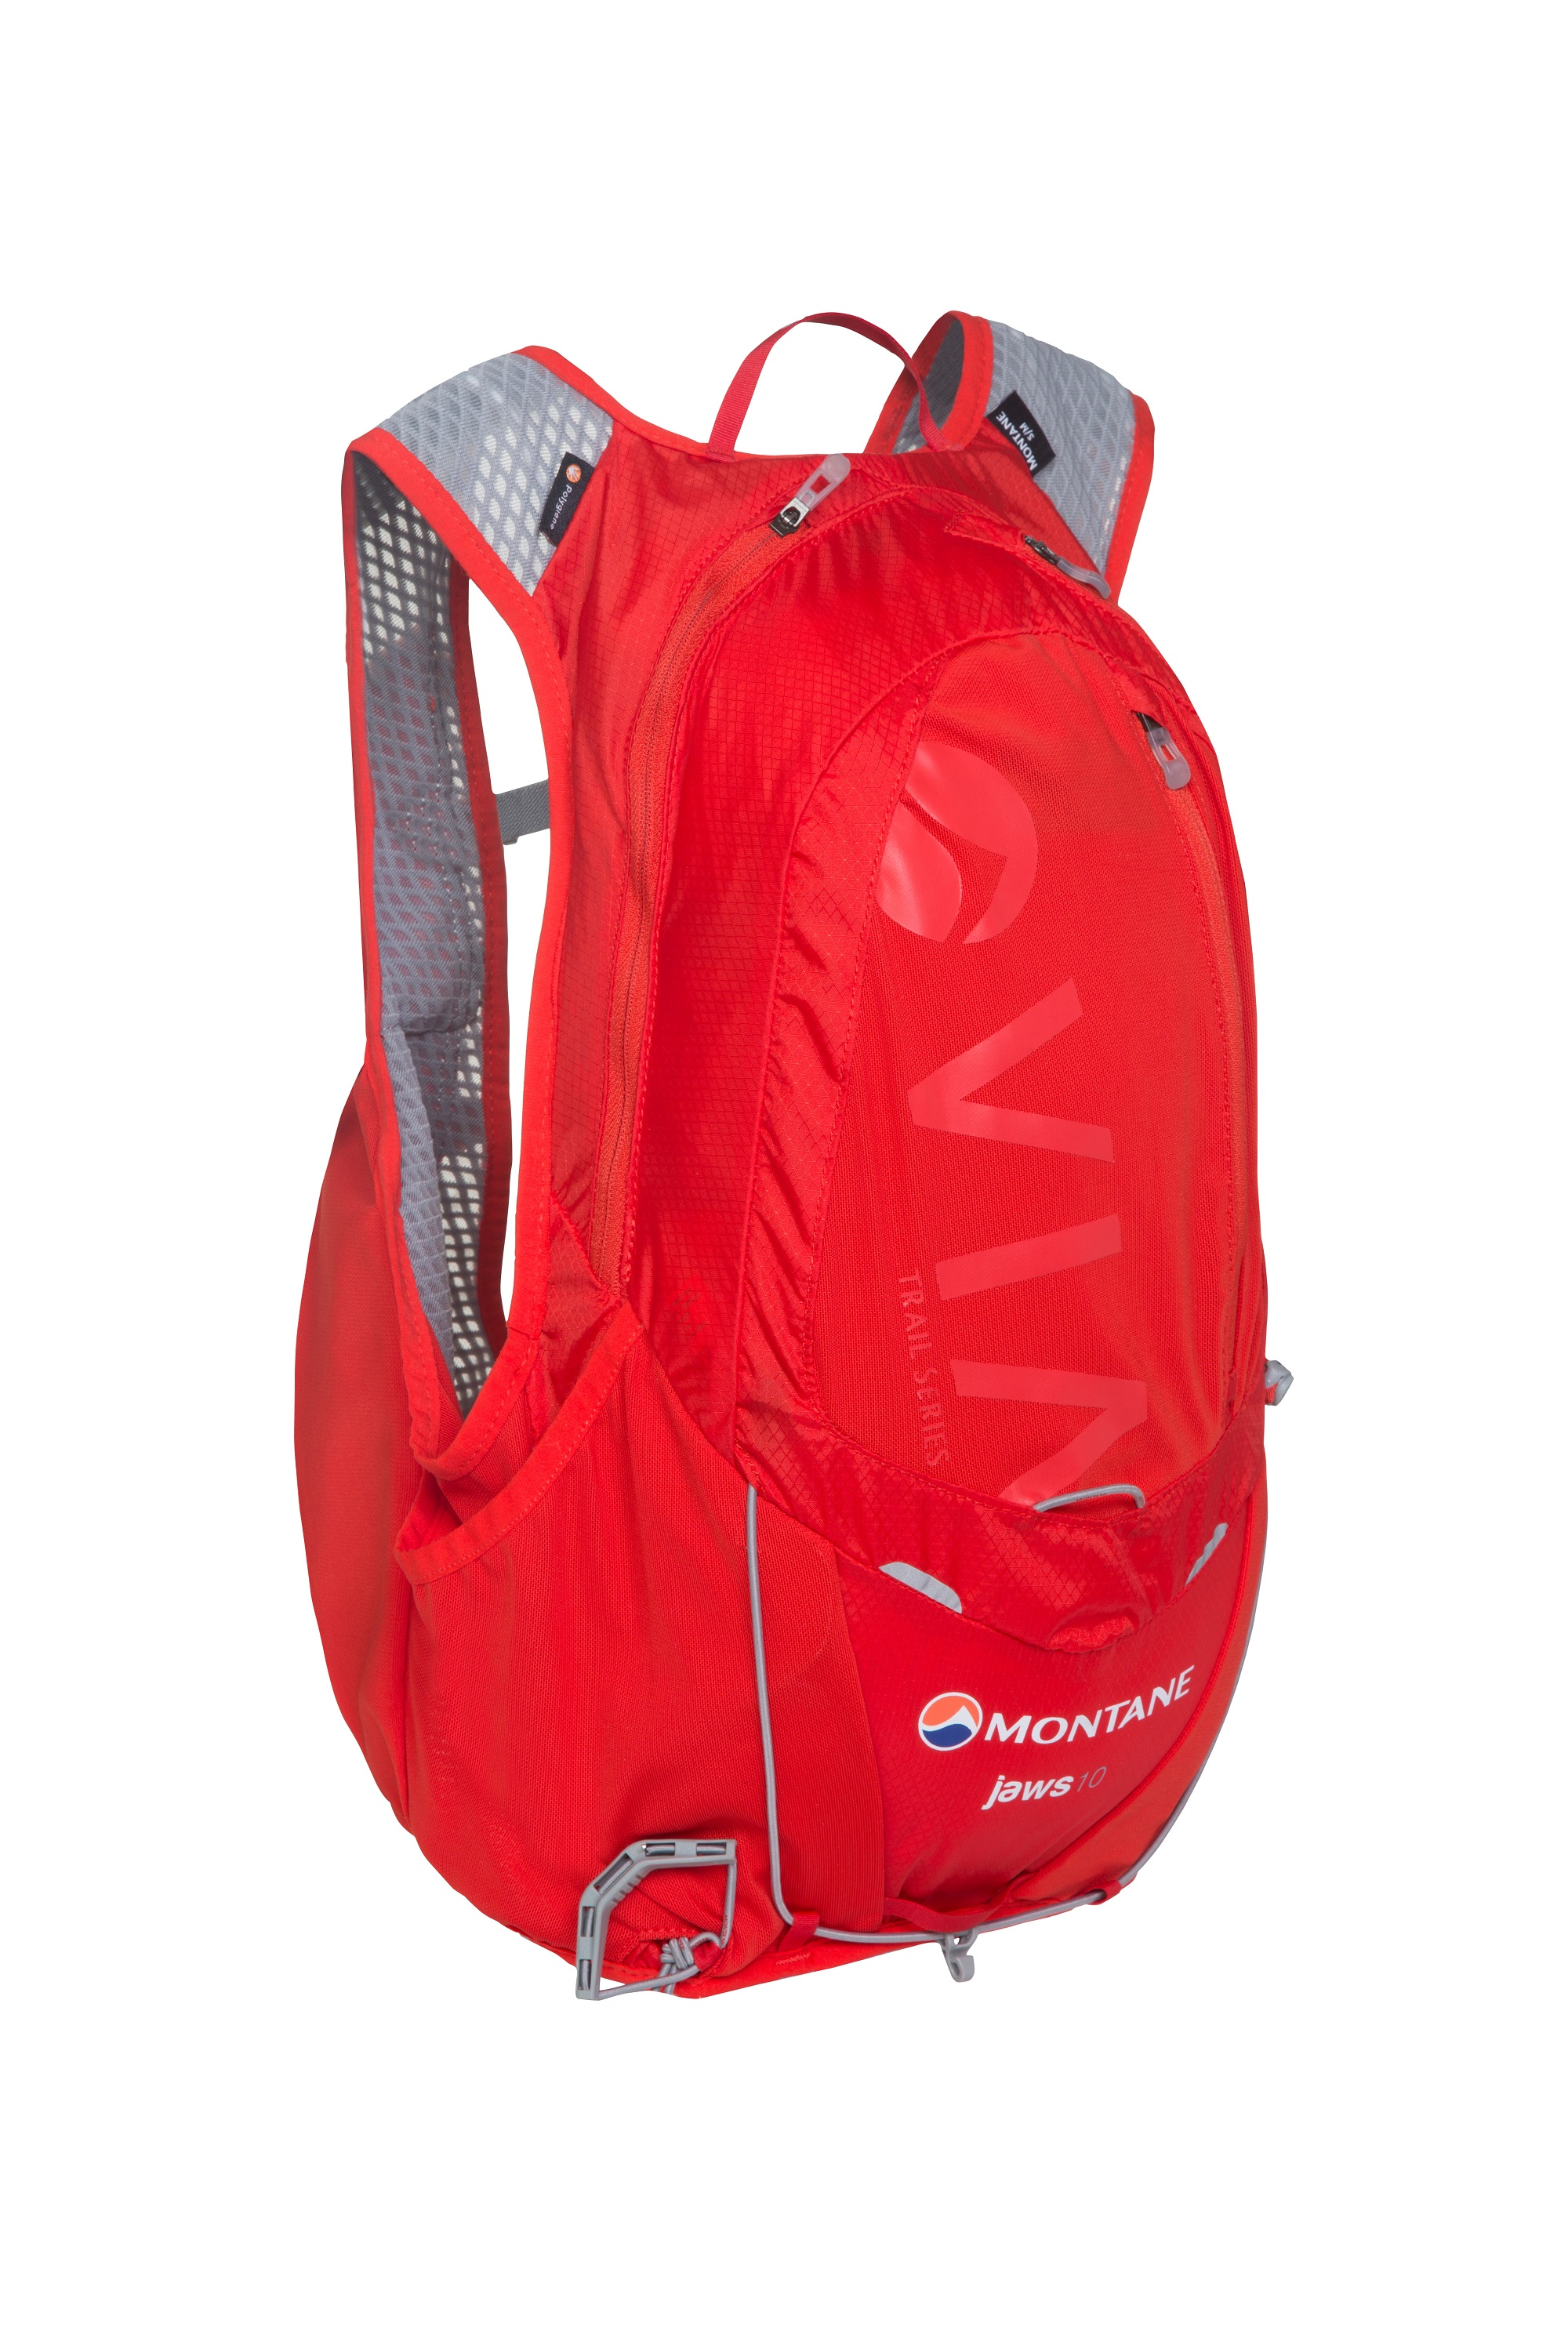 Montane VIA Jaws 10 Hydration Pack | item_misc